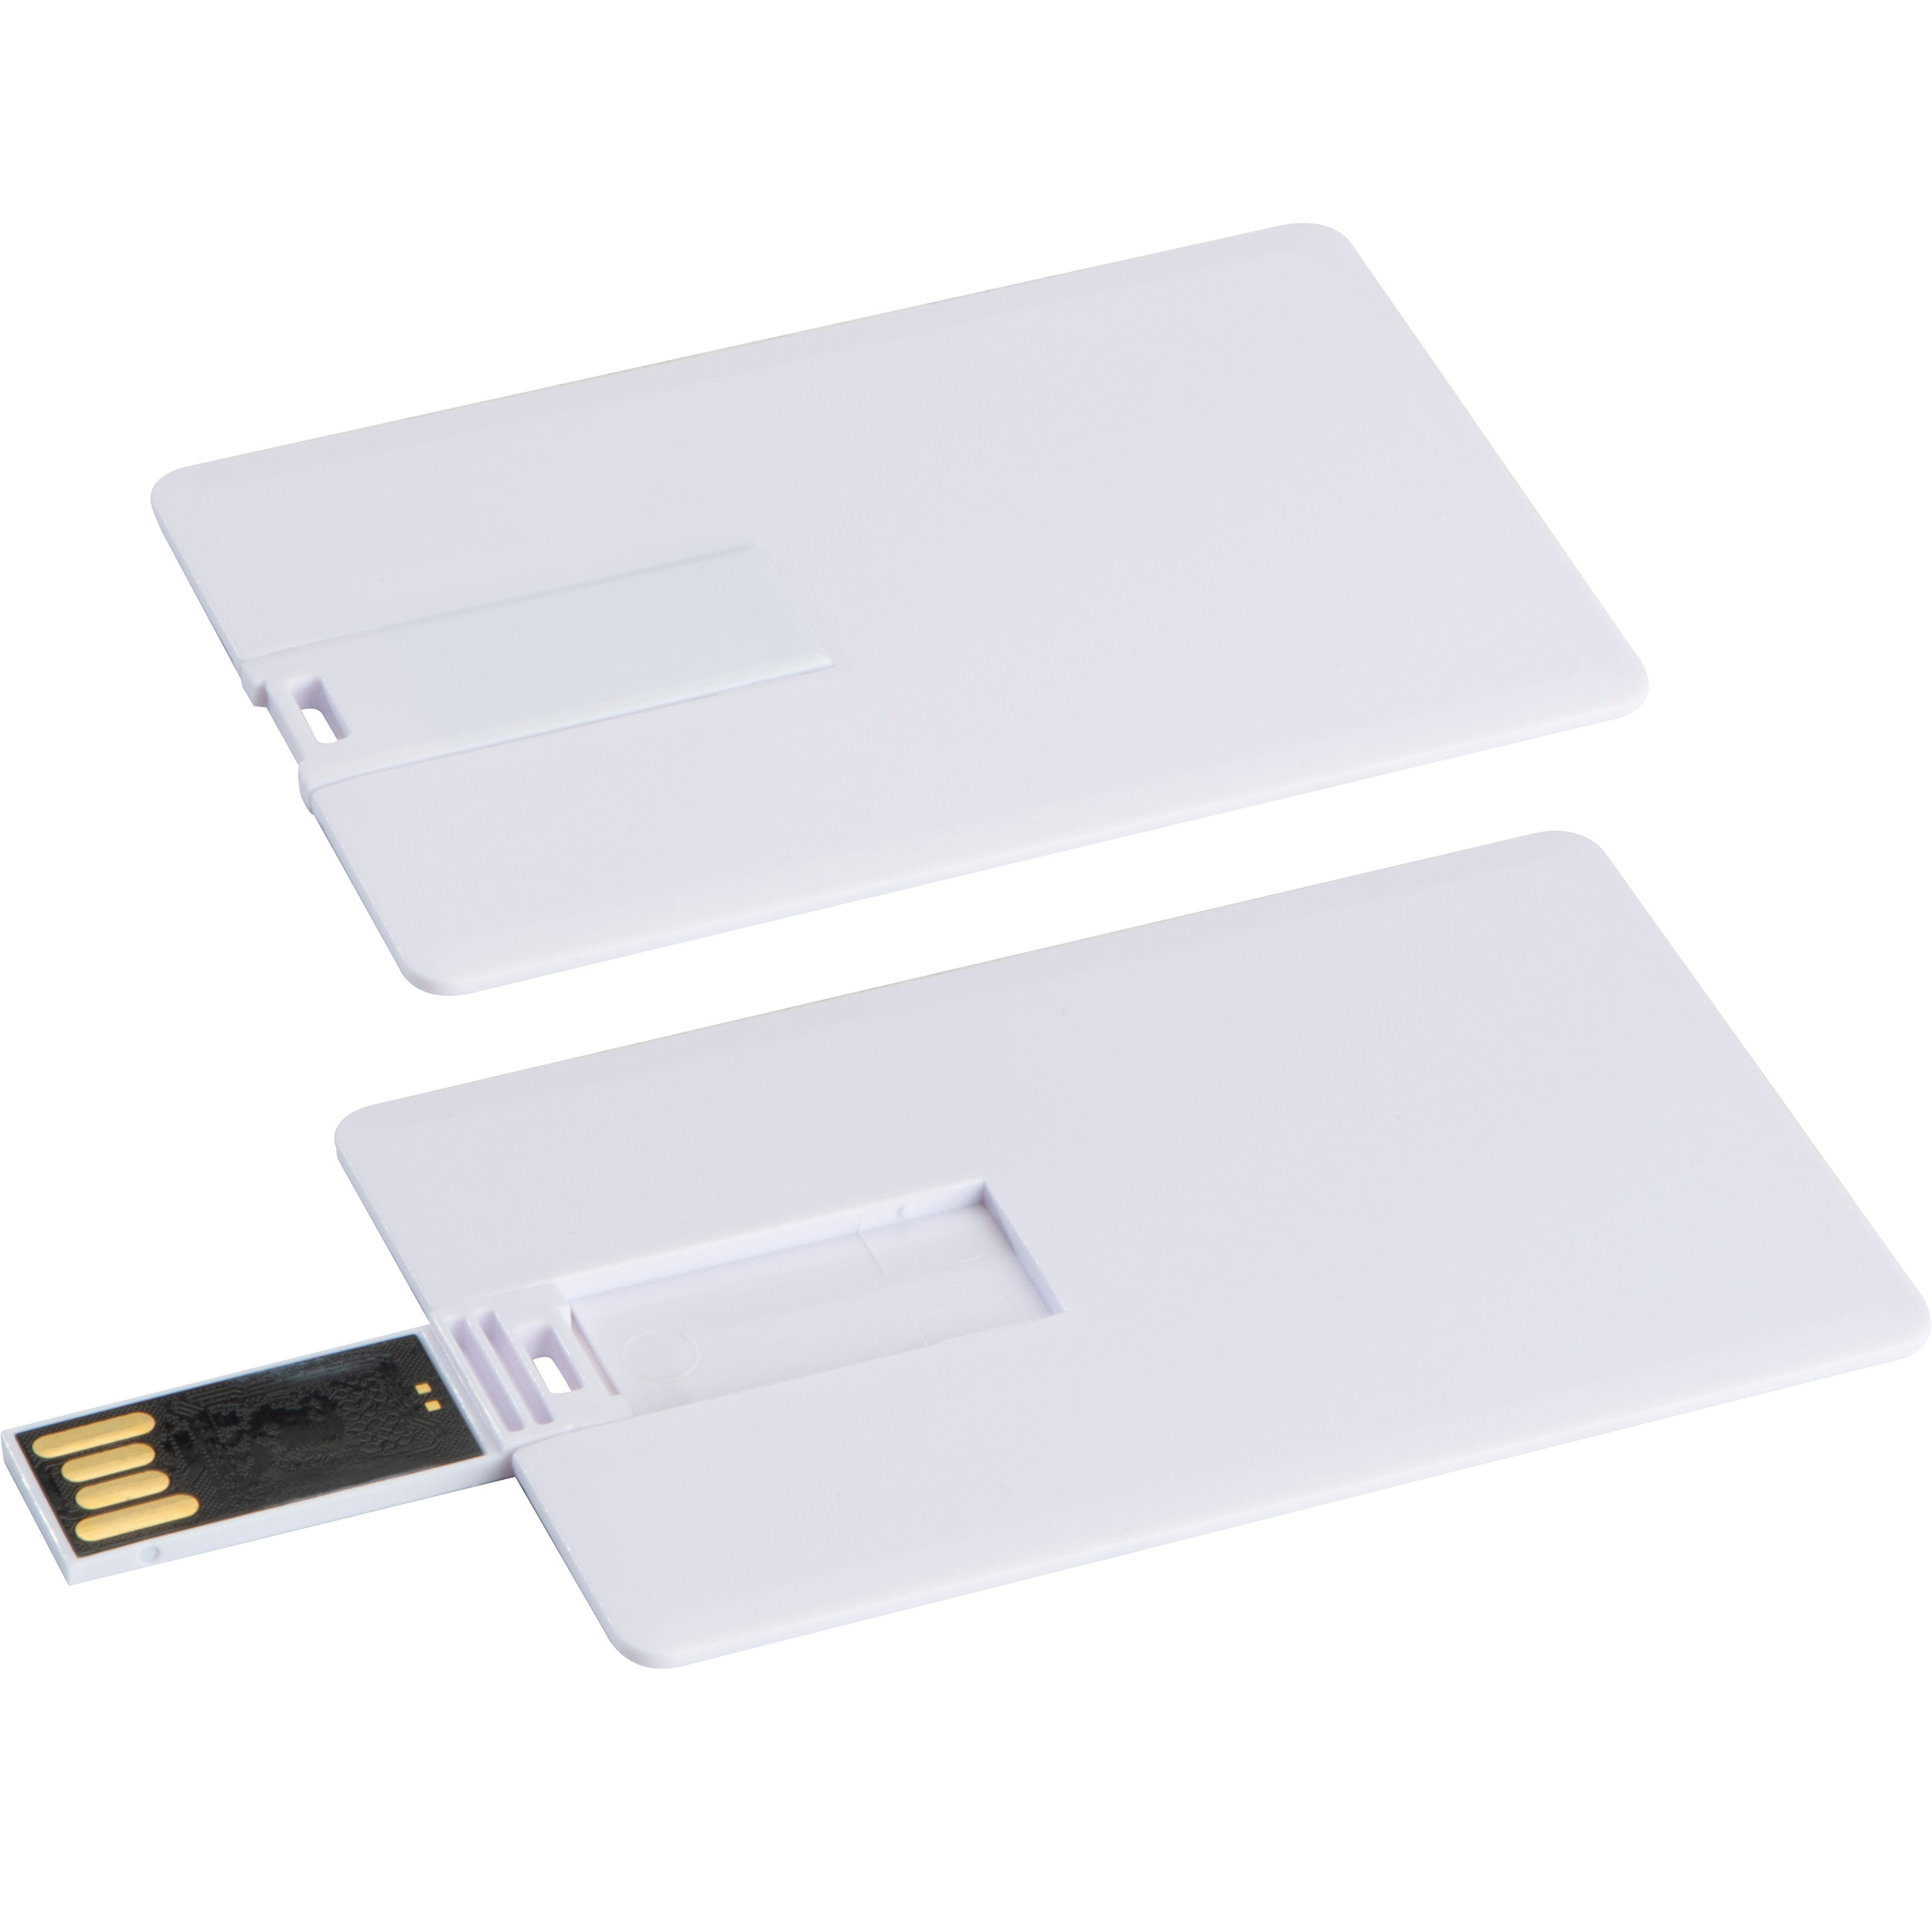 4GB USB Card